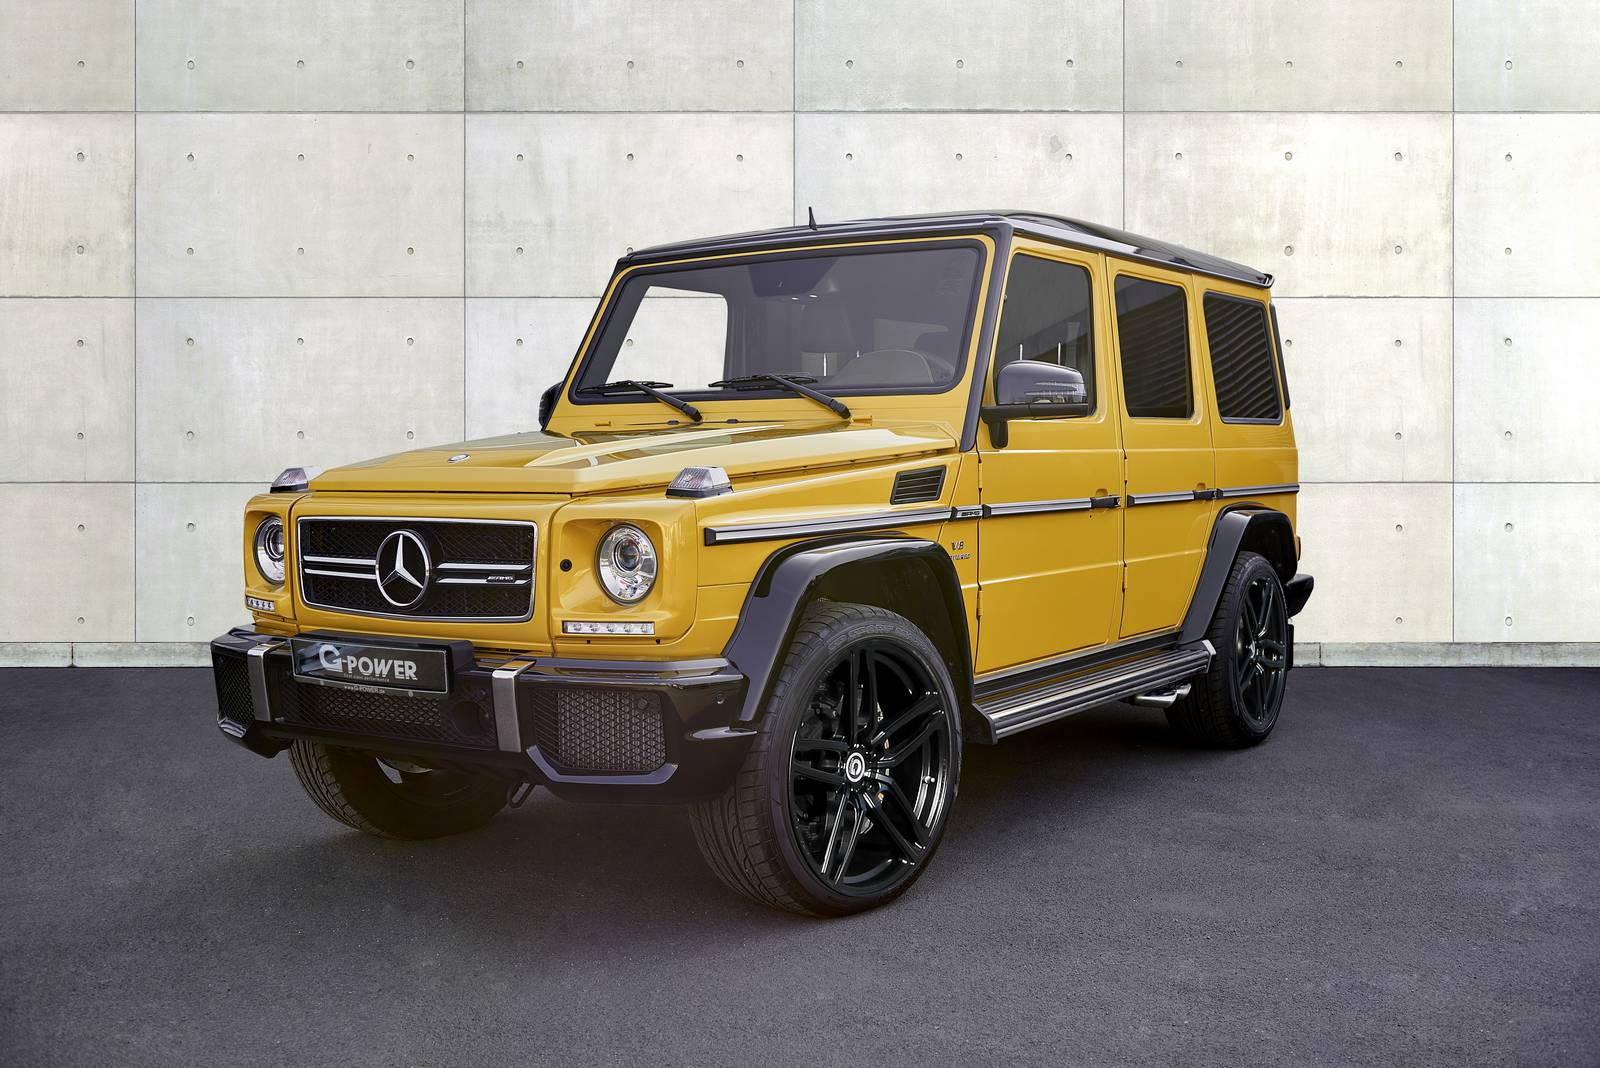 official g power mercedes benz g63 amg with 645hp gtspirit. Black Bedroom Furniture Sets. Home Design Ideas